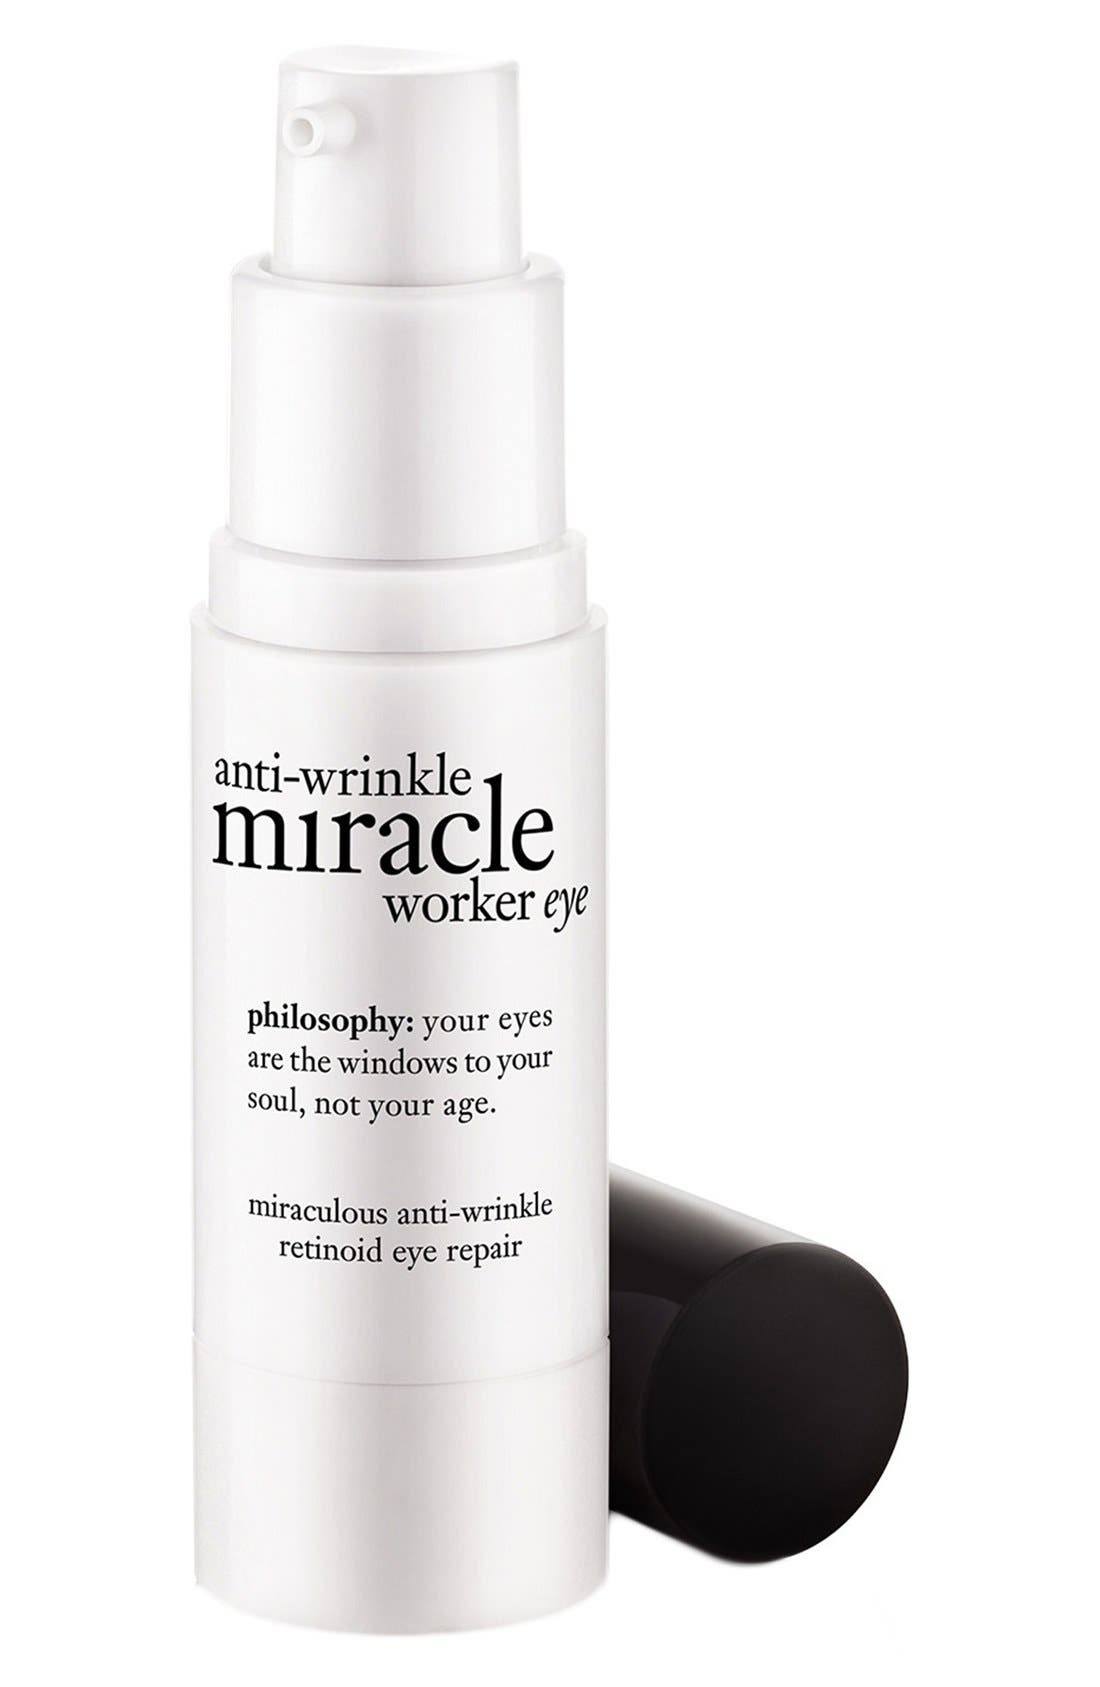 philosophy anti-wrinkle miracle worker eye miraculous anti-wrinkle retinoid eye repair